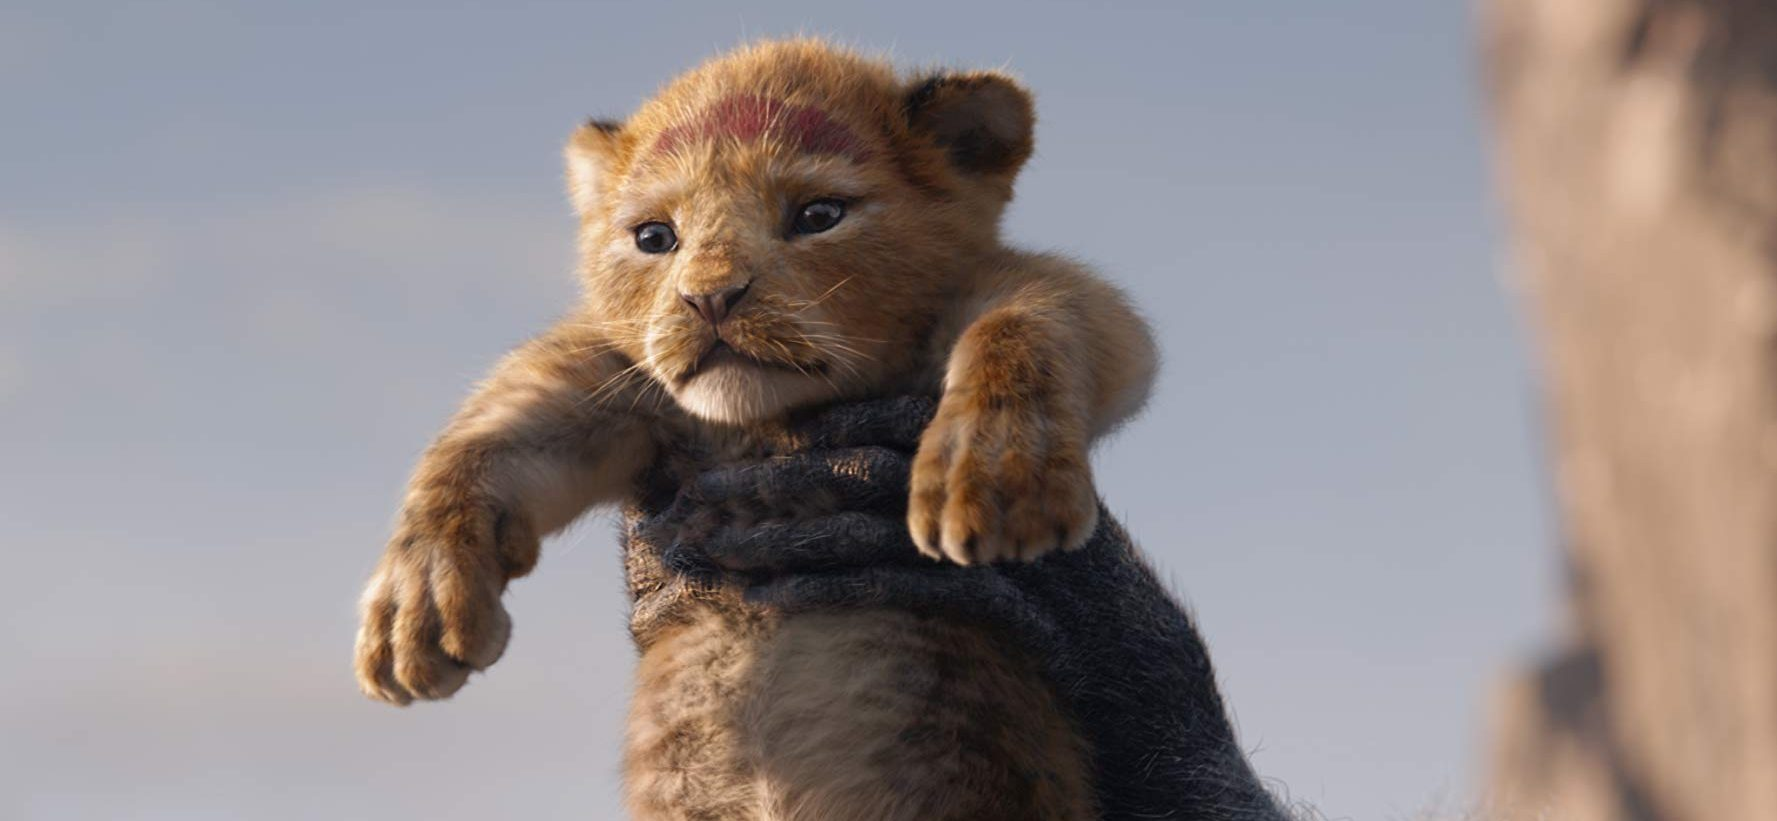 The Lion King Soundtrack List Released as Tickets Go on Sale – /Film